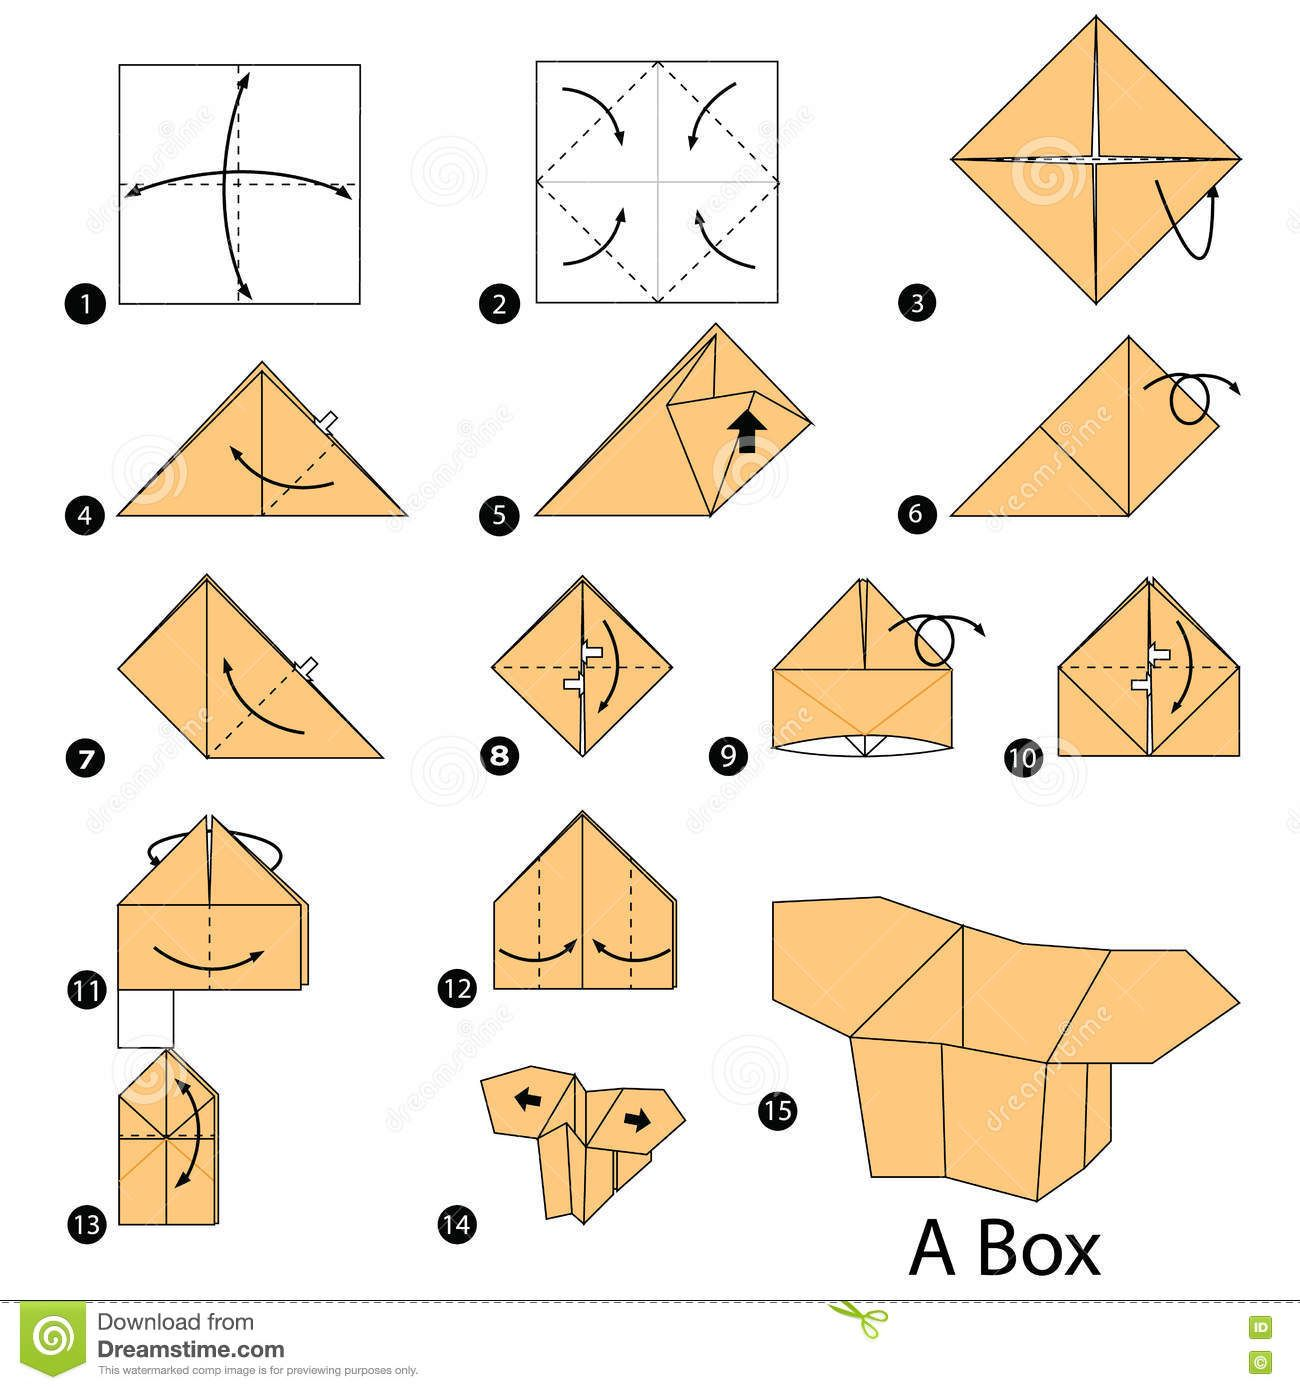 Steps to make a origami